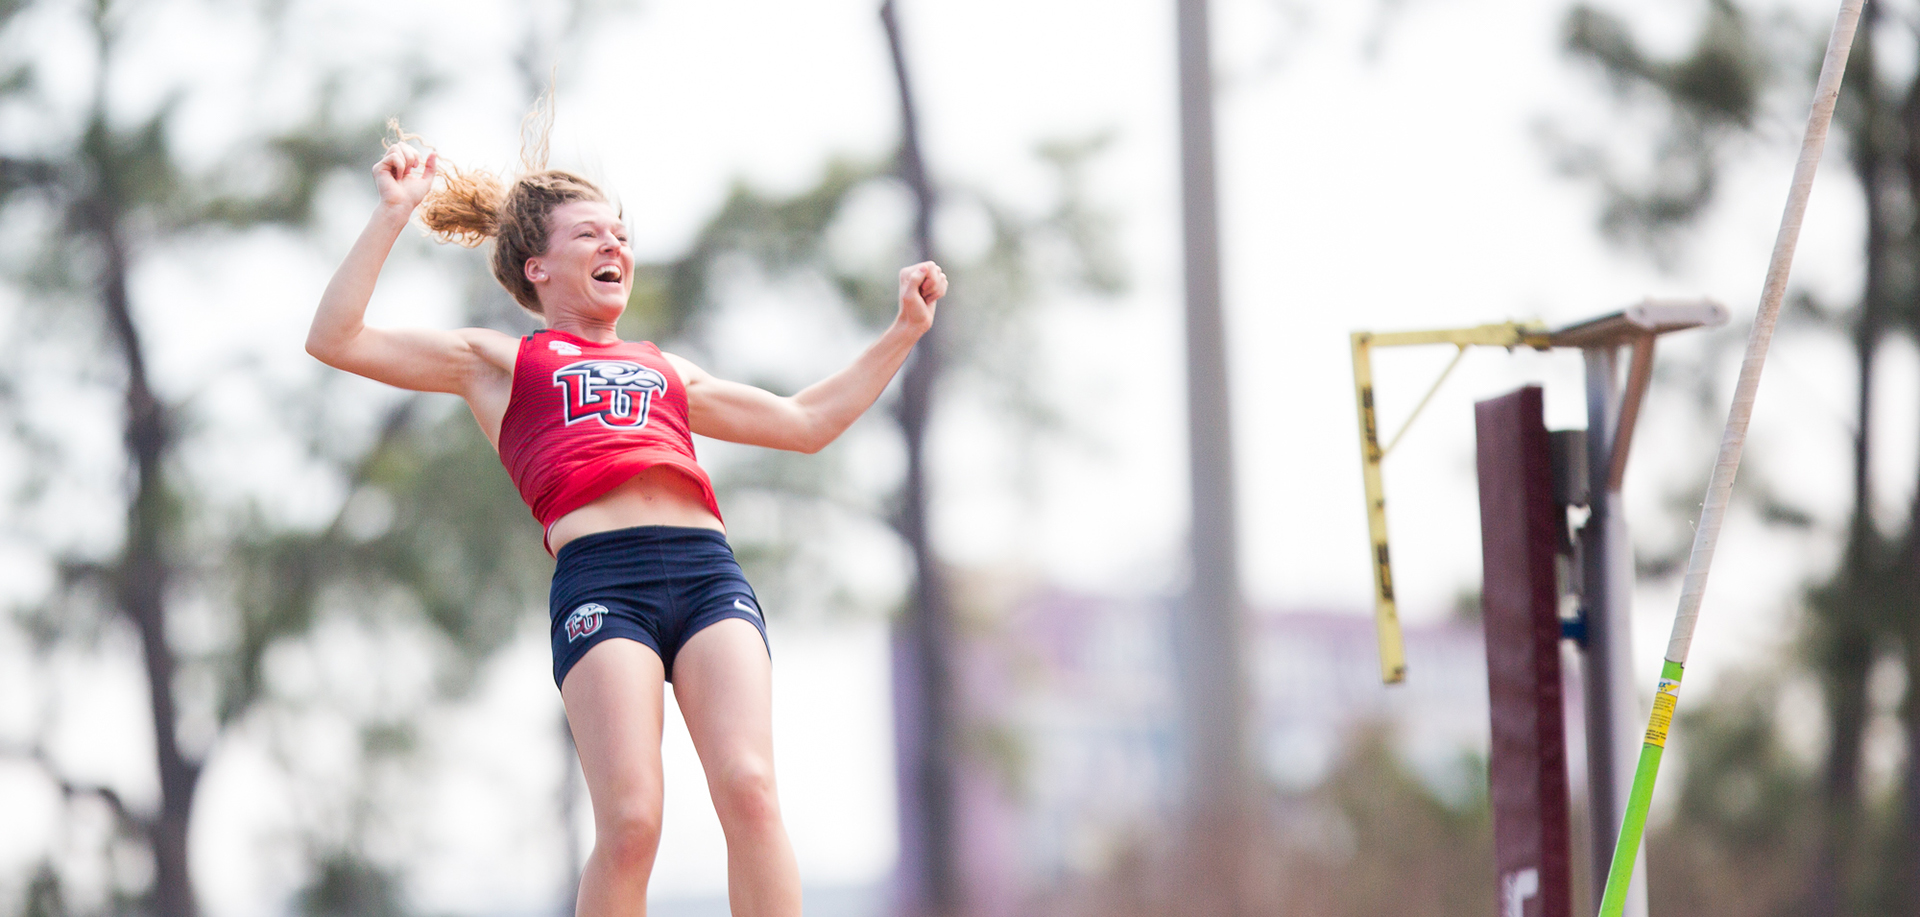 Big South women's pole vault leader Jessie Glynn will square off against some of her top conference rivals on Saturday at the Campbell Invitational.